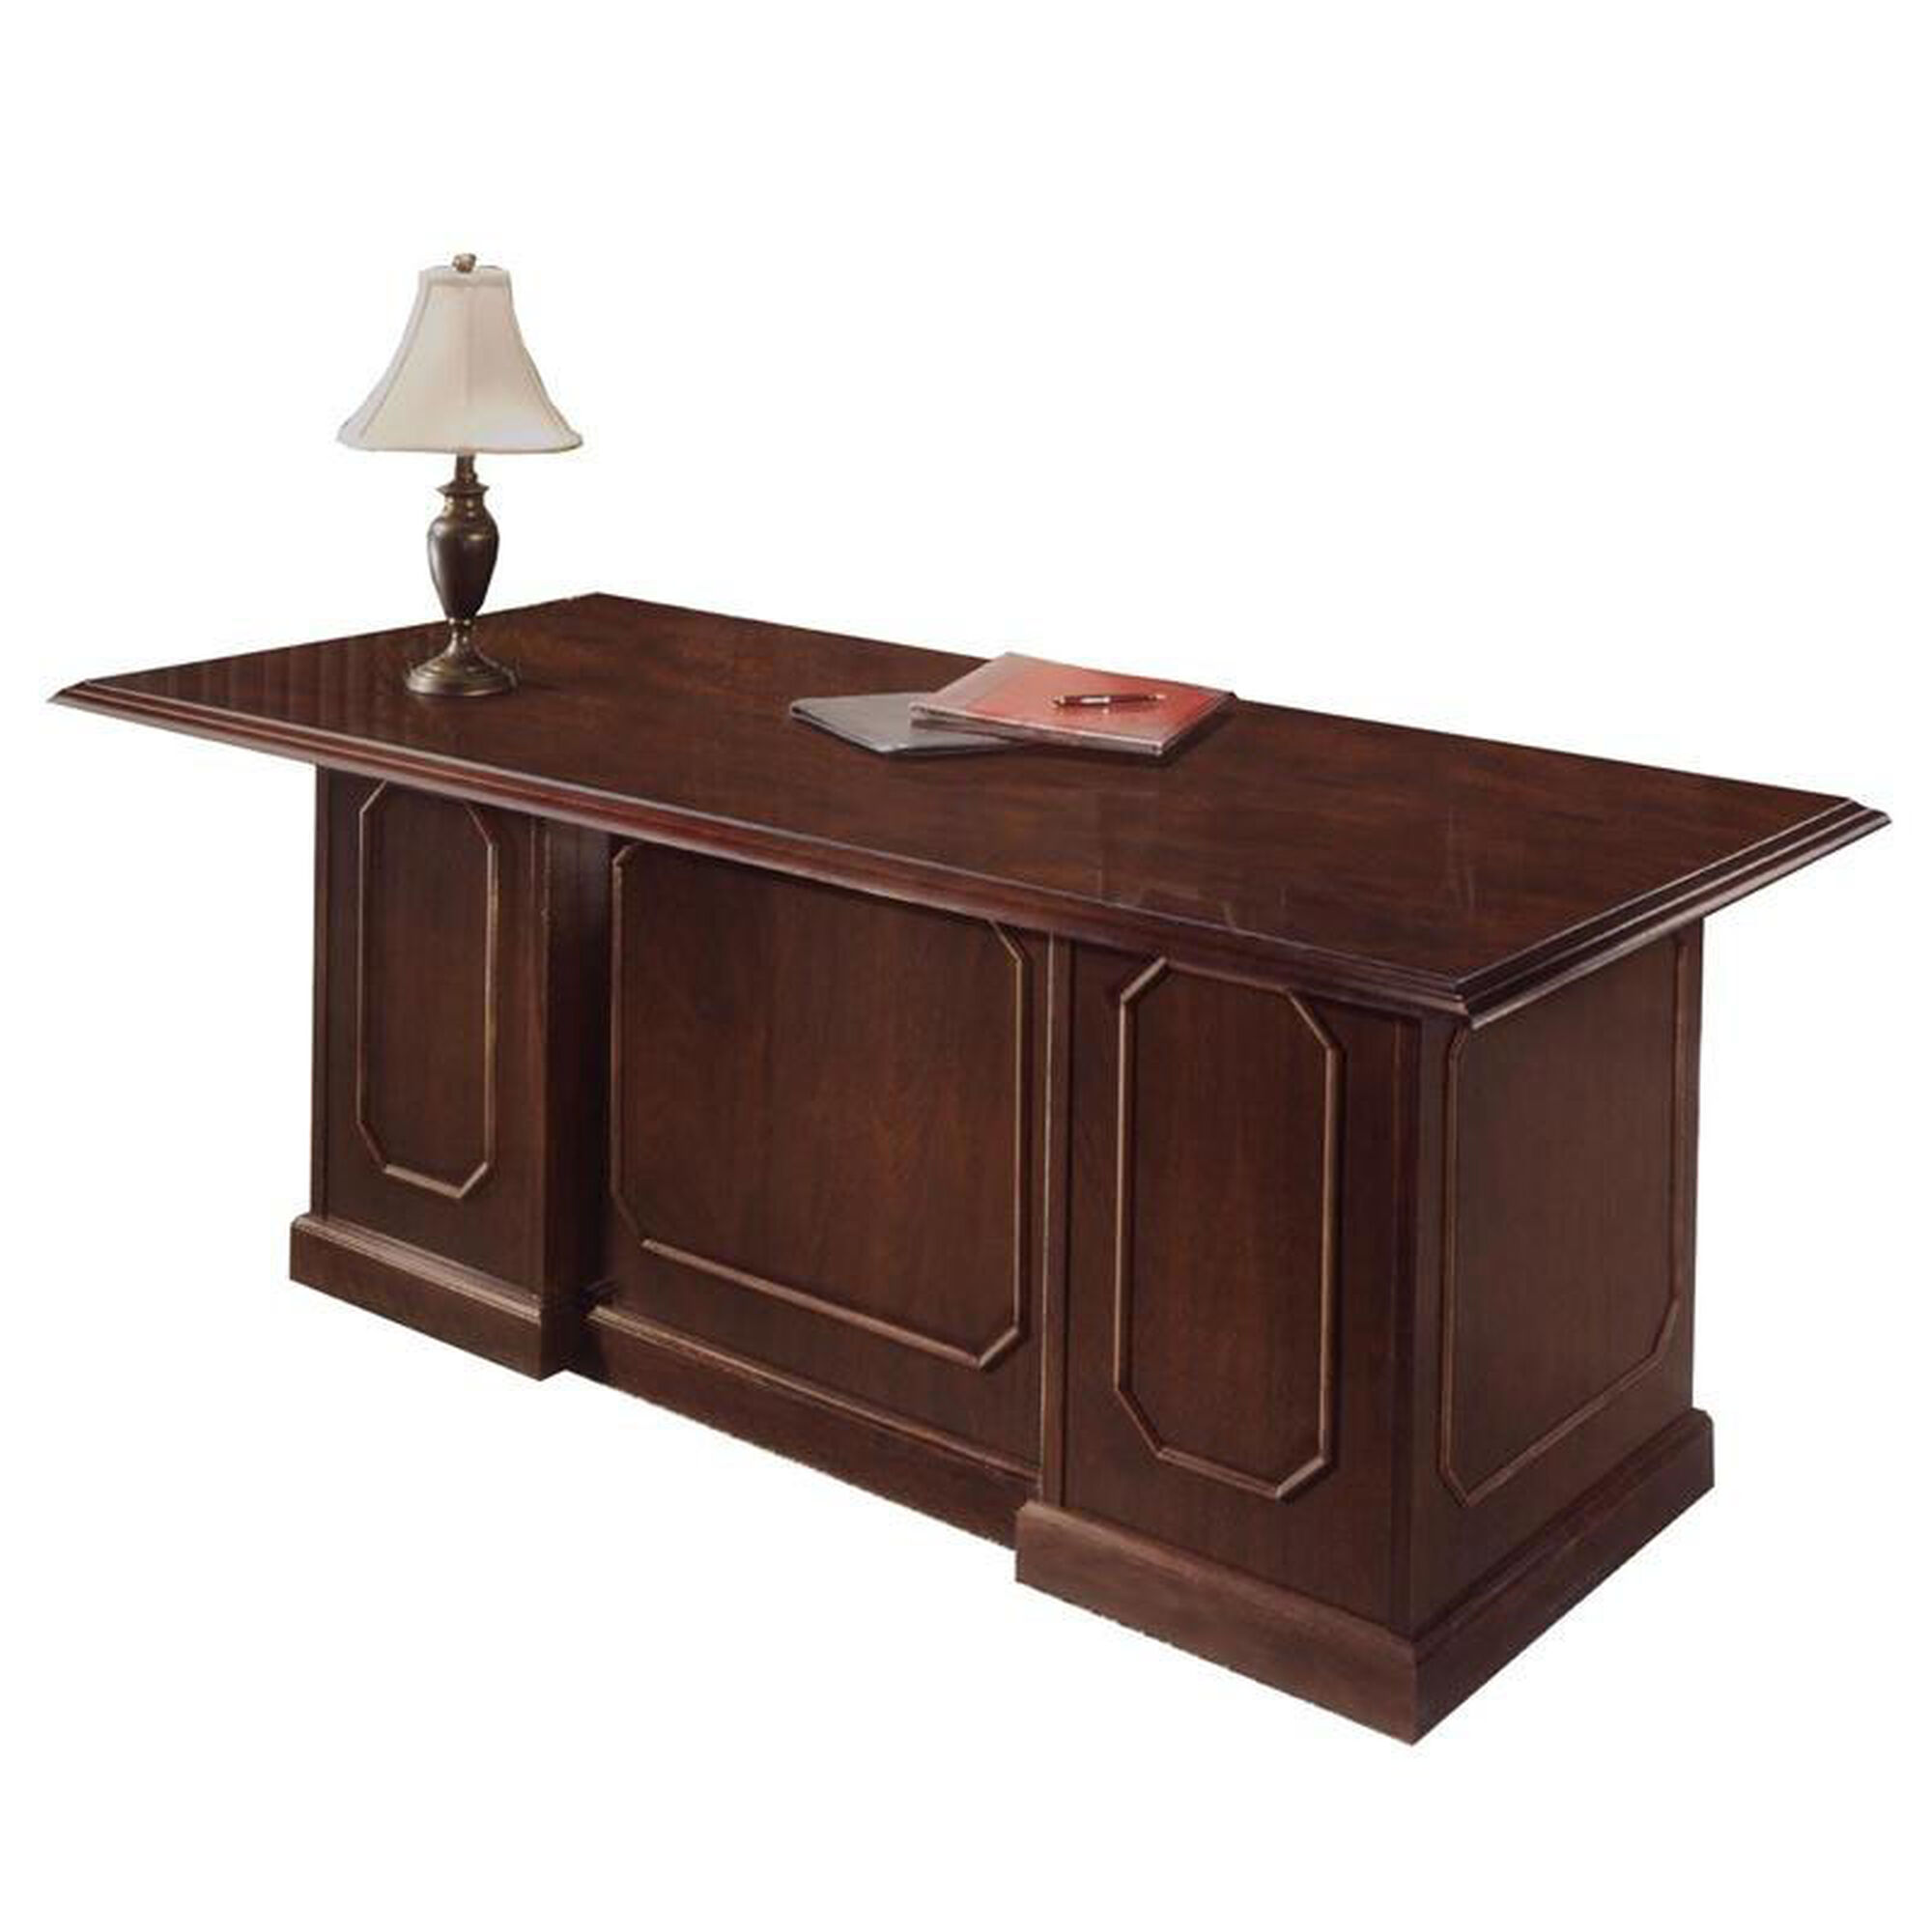 com design executive desk onsingularity ideas and furniture office home pictures dmi